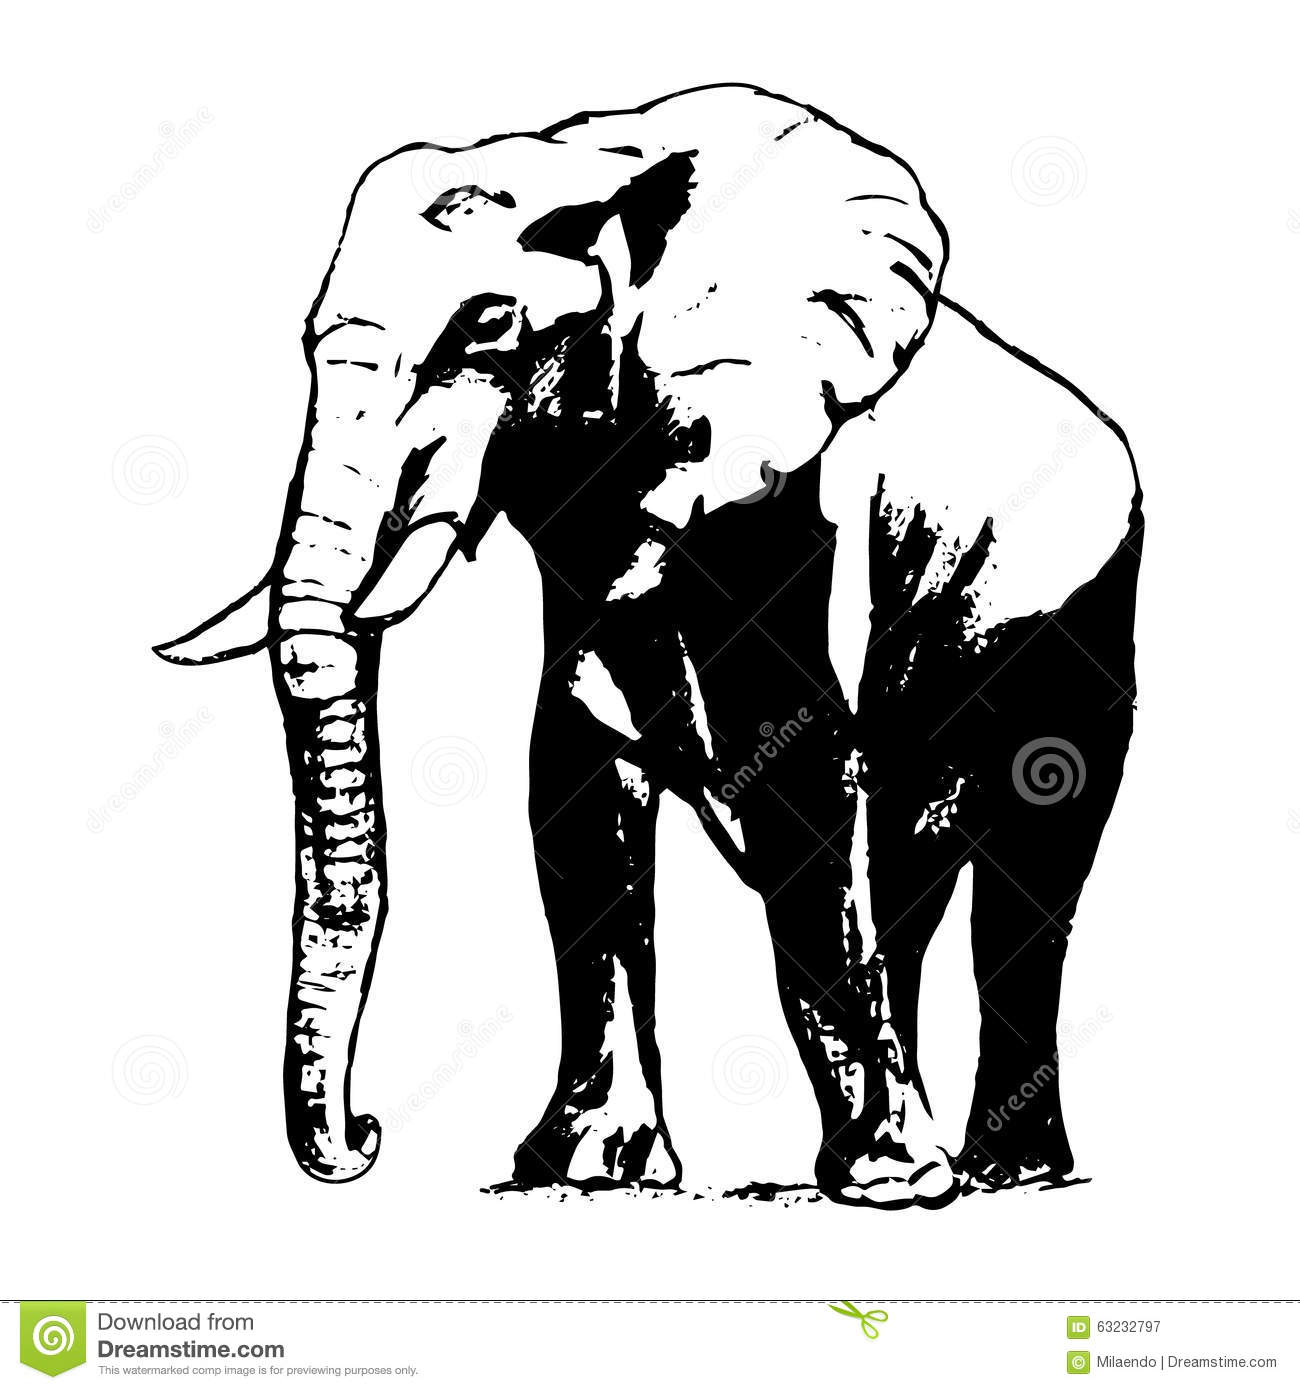 Elephant In Black And White, The Graphic From The Hand